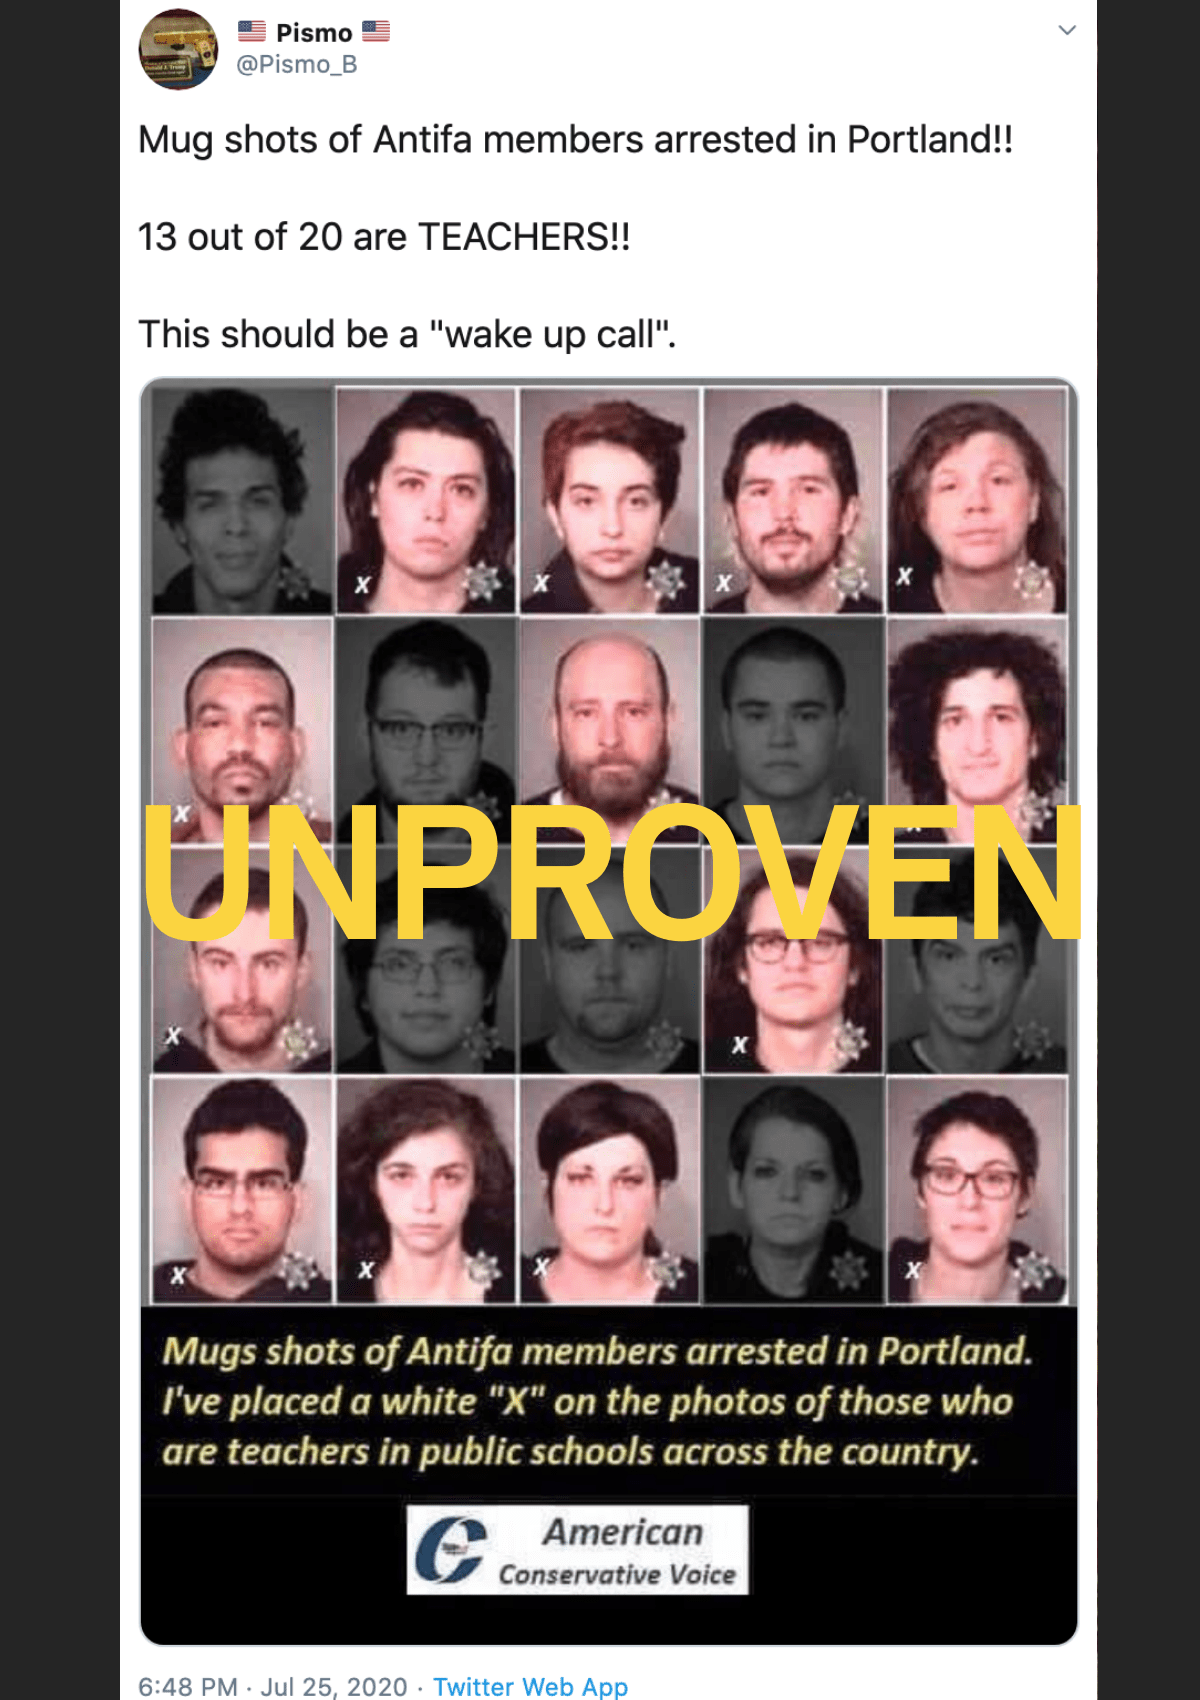 Did Mugshots Show 13 'Antifa Teachers' Arrested in Portland? - snopes